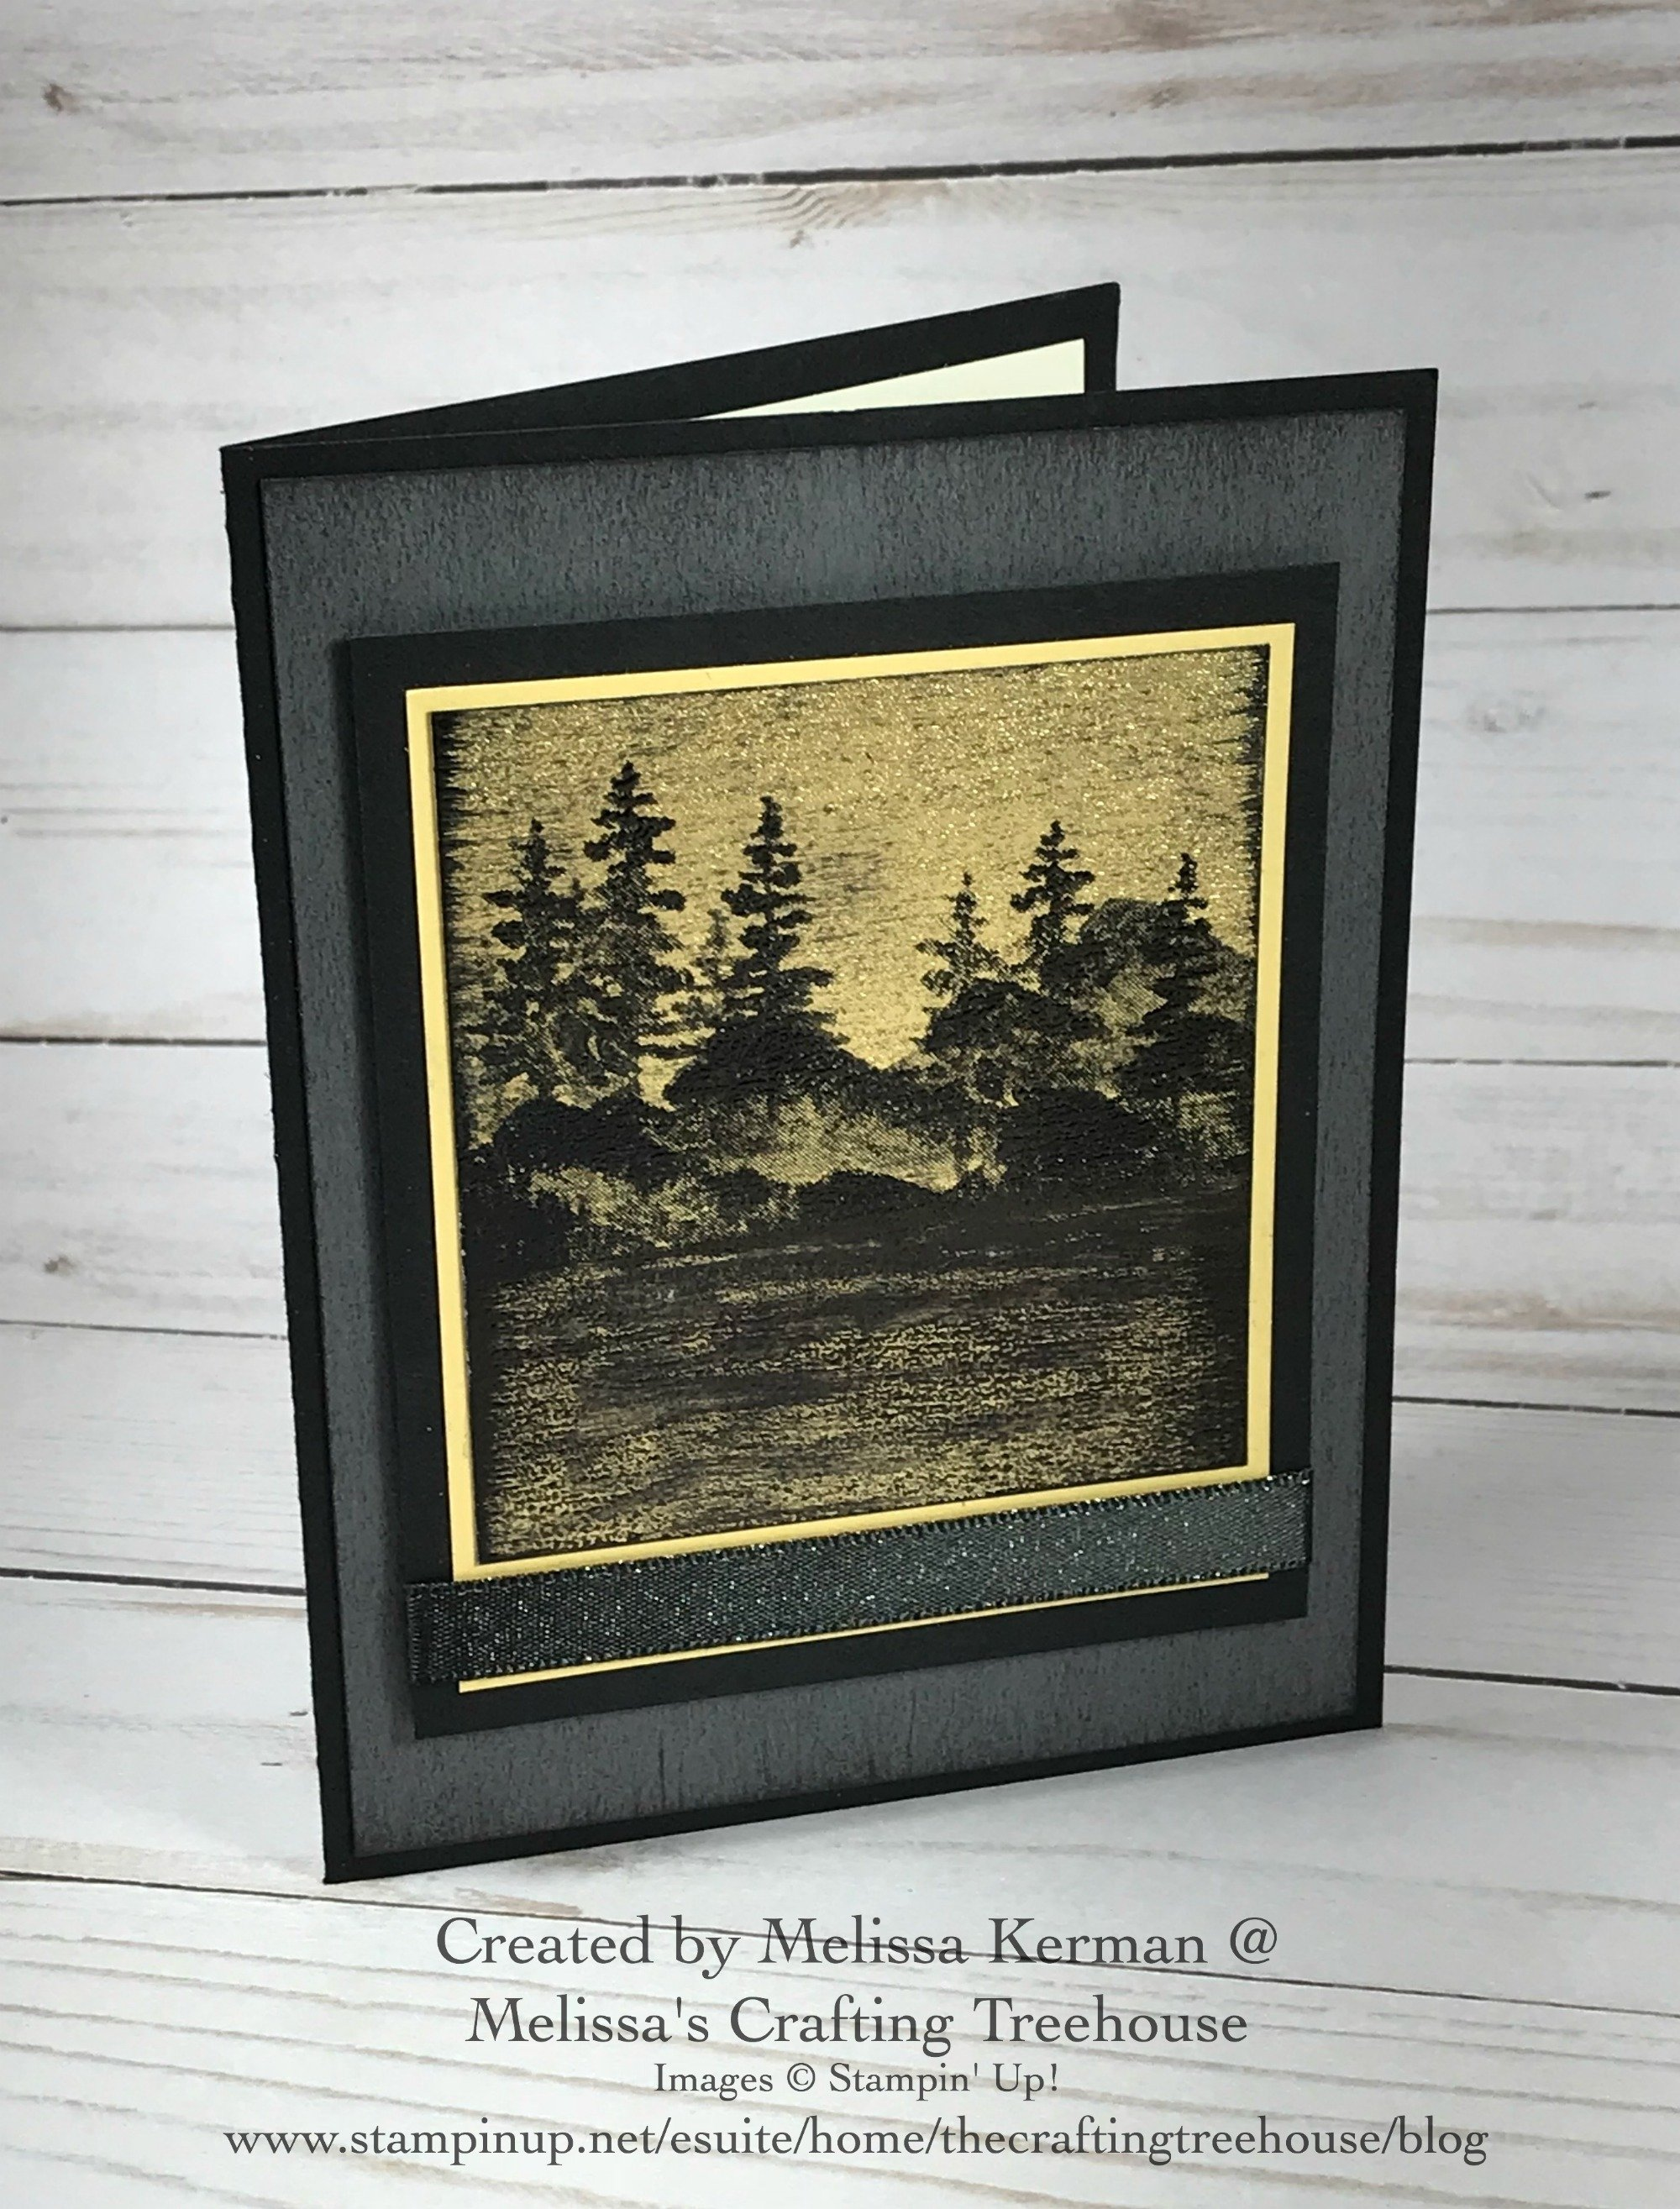 Check out this project made with the Stampin' Up! Waterfront Stamp Set! It's made with my very own Black Ice paper crafting technique!